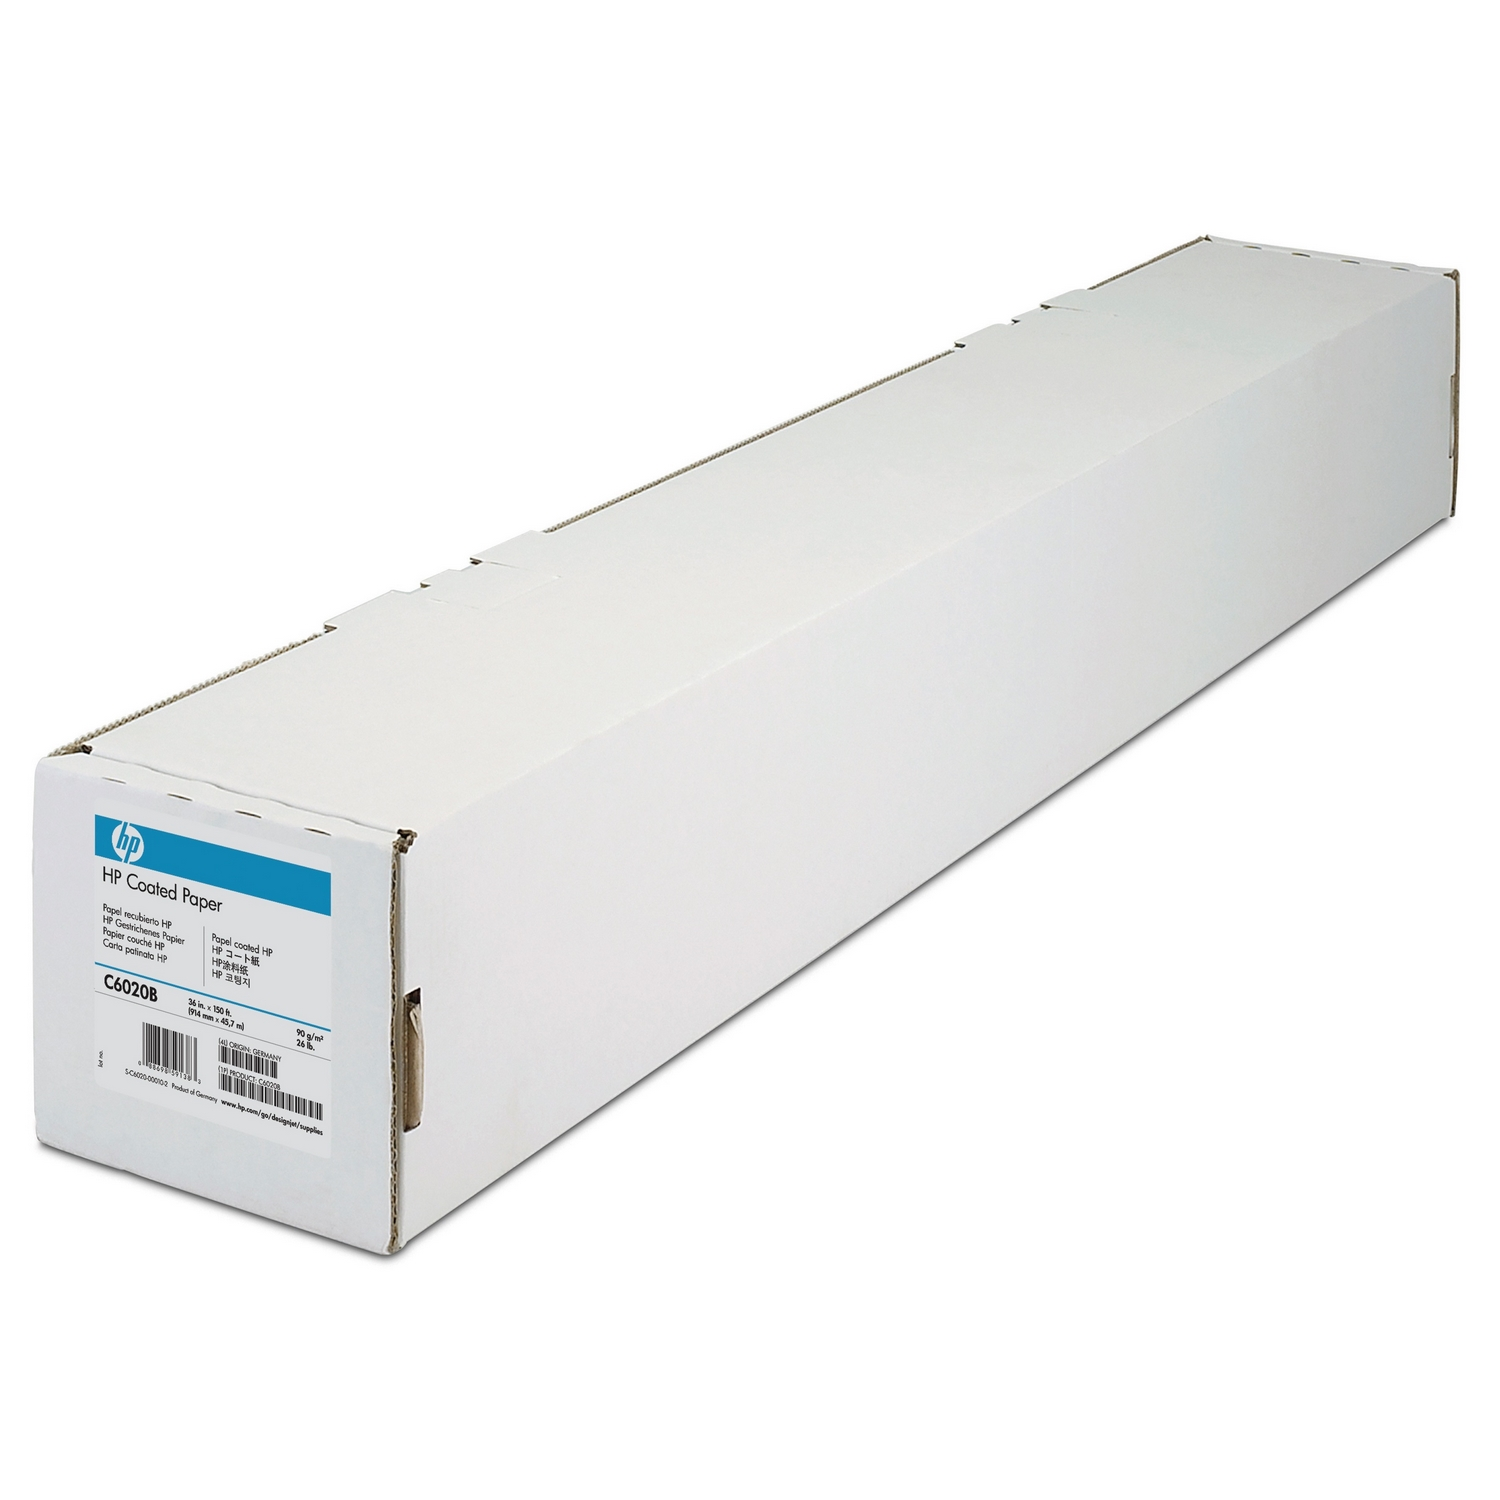 Original HP C6020B 90gsm 36in x 150ft Paper Roll (C6020B)